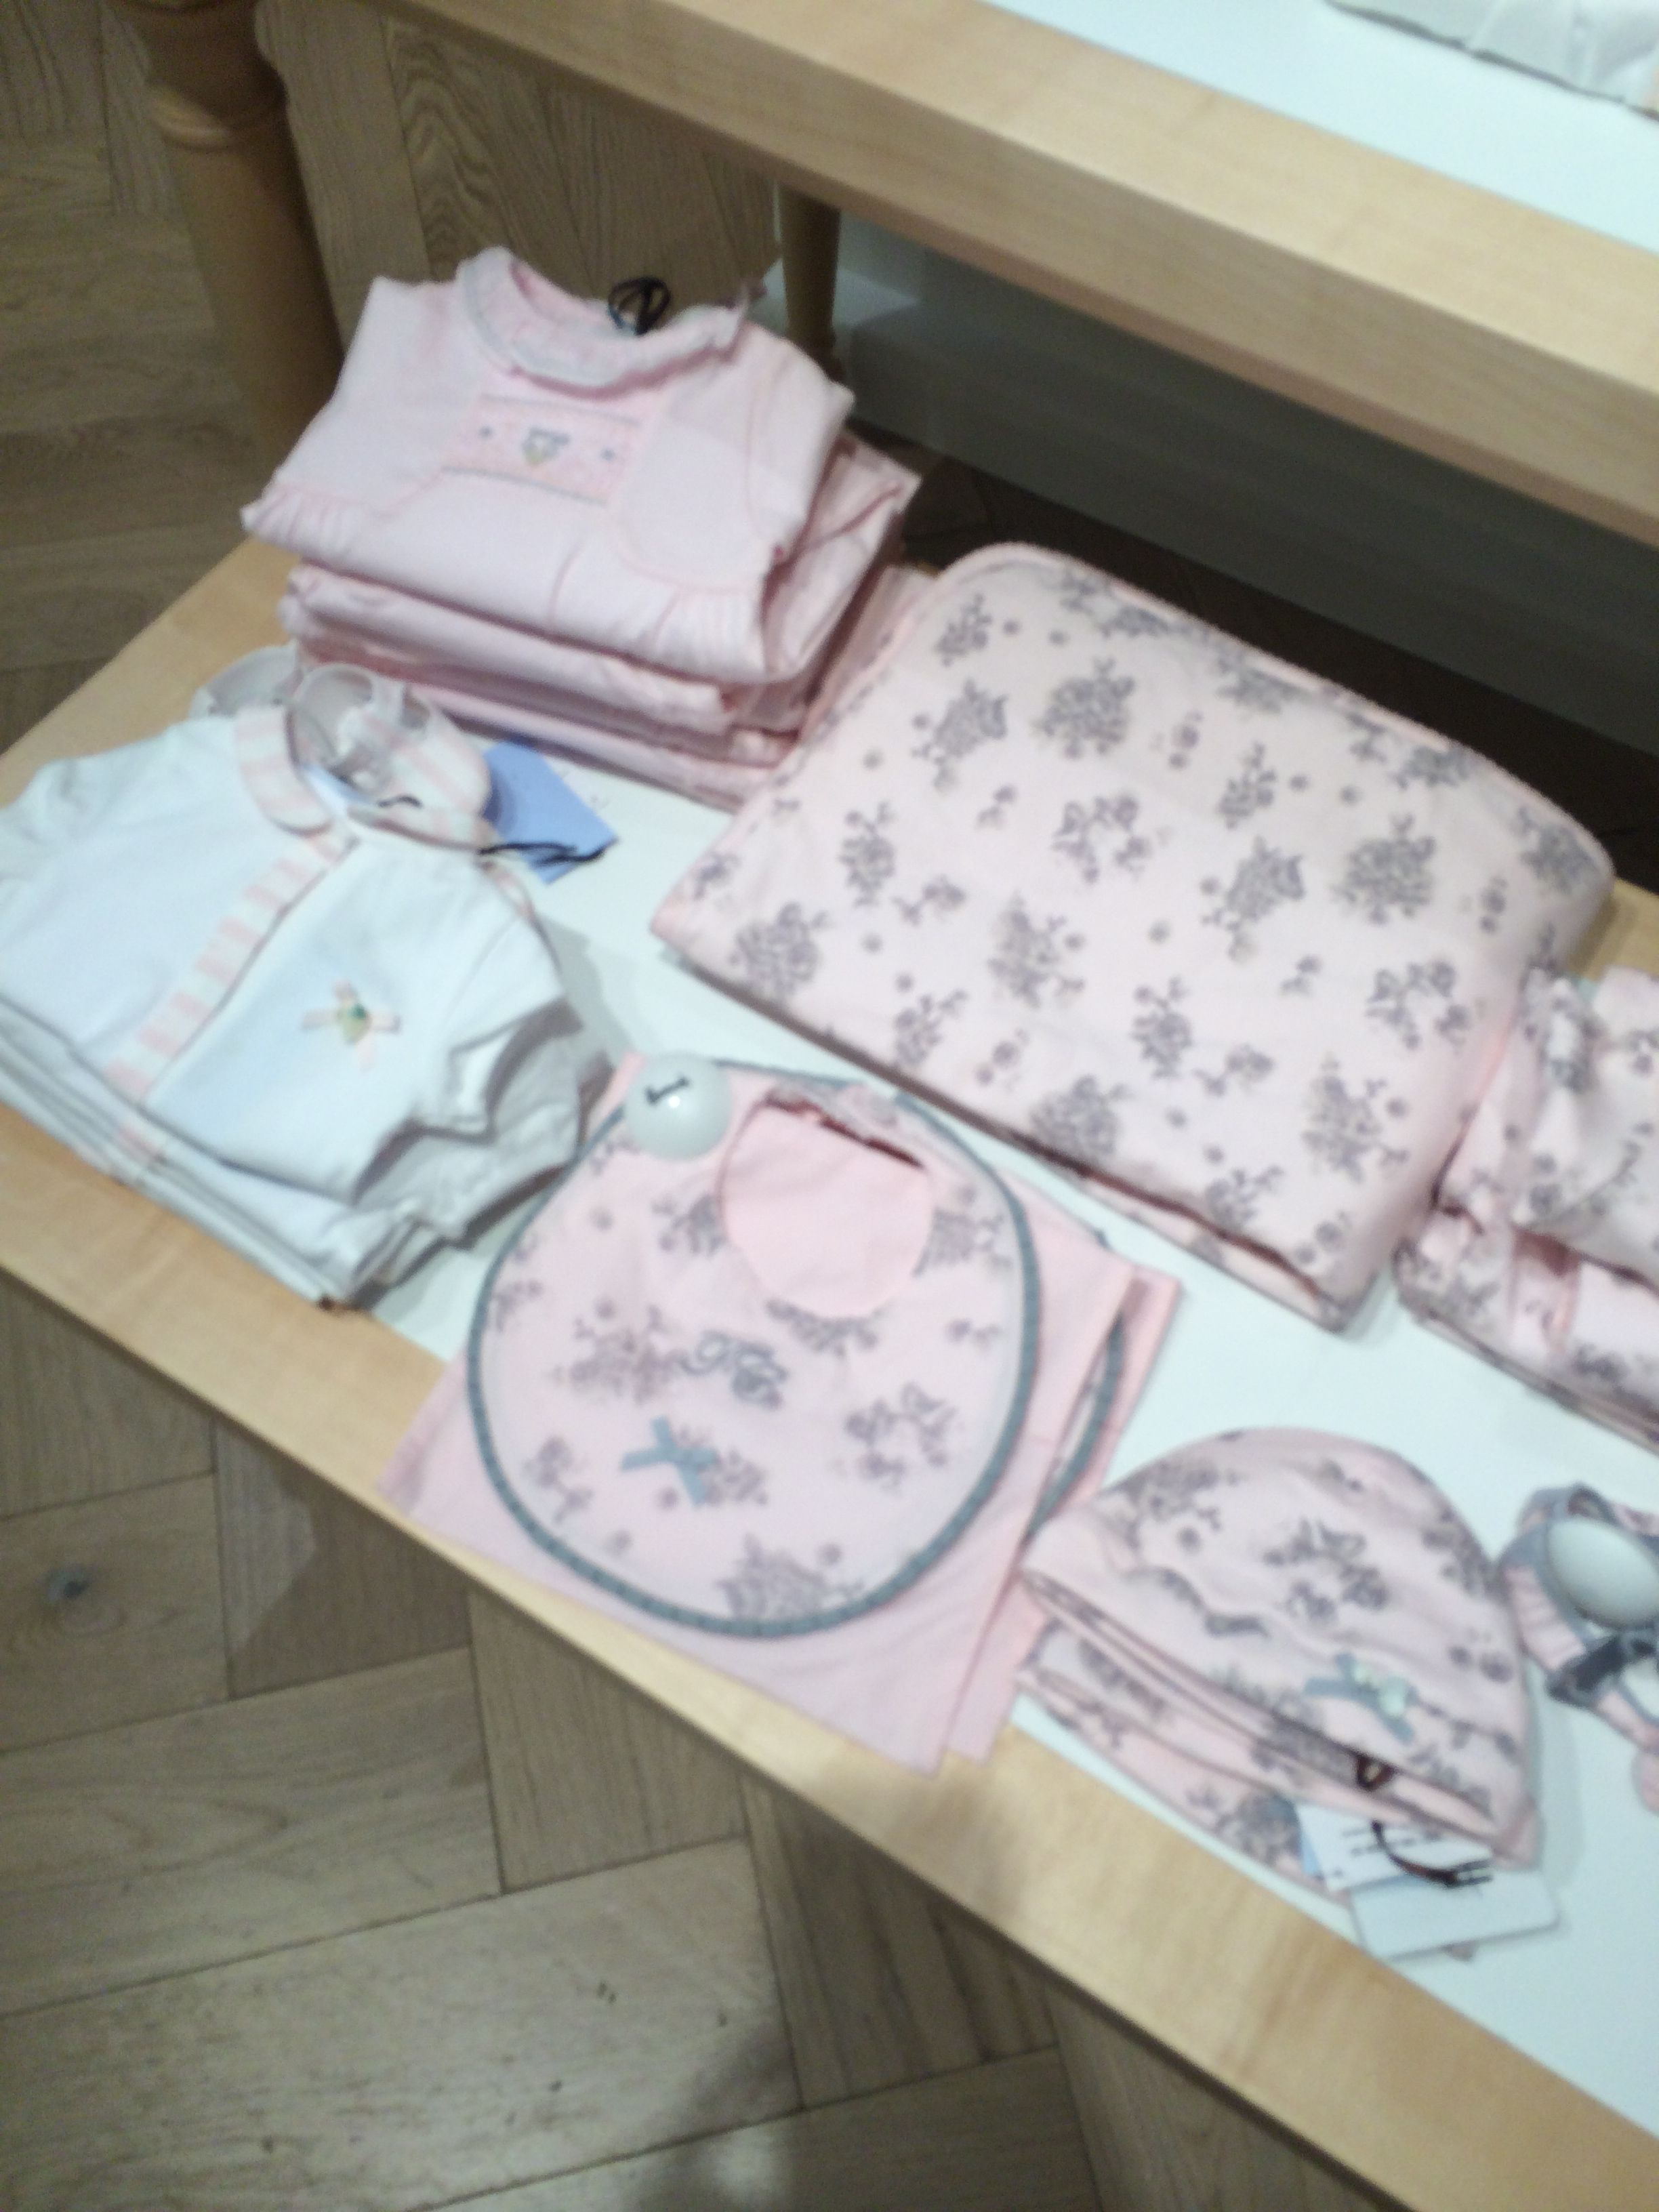 Harrods layette table presentation; sketchy grey floral